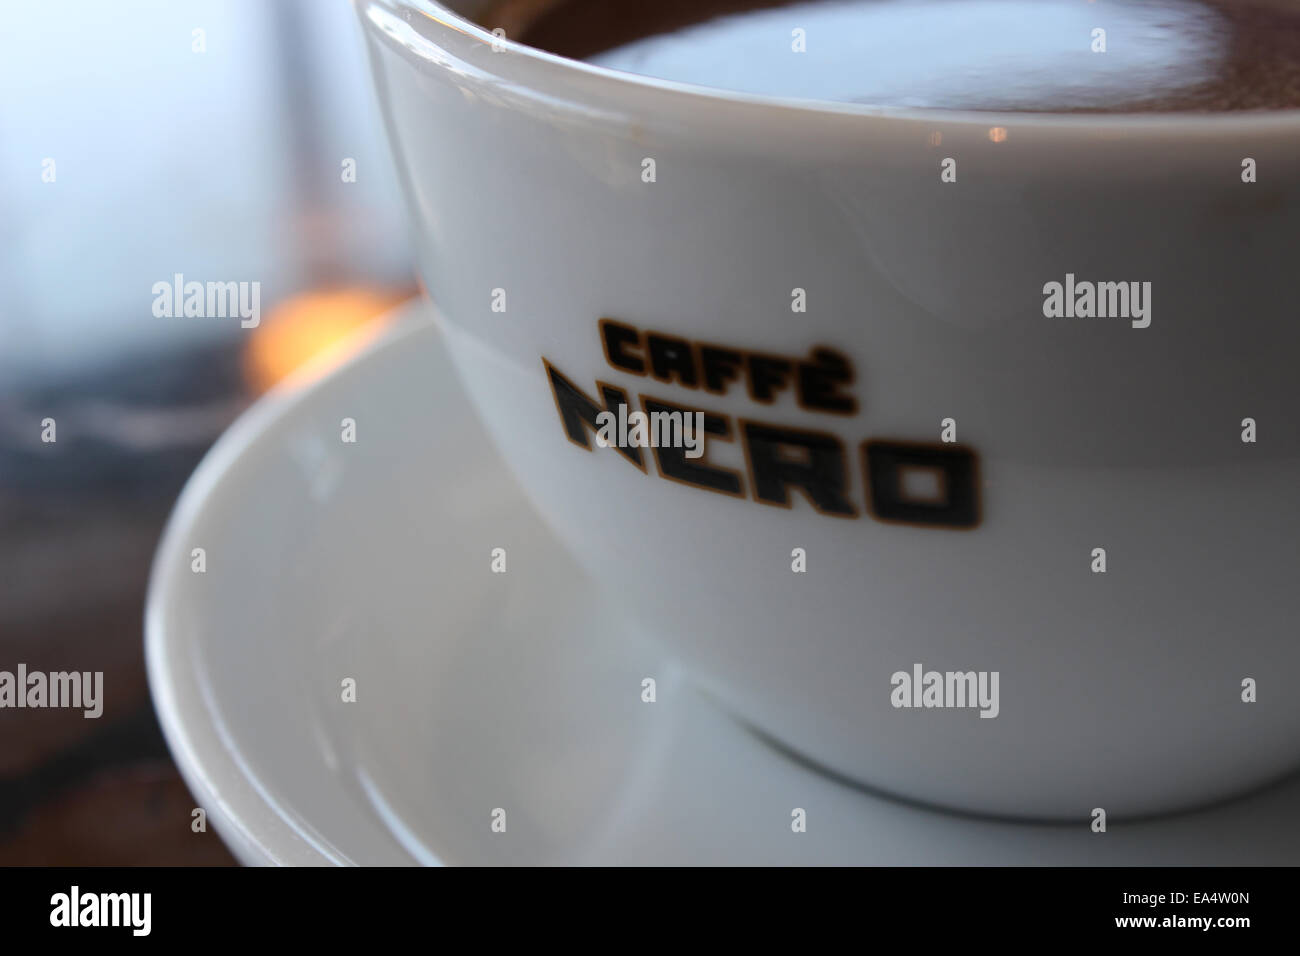 A Caffe Nero coffee made fresh - Stock Image